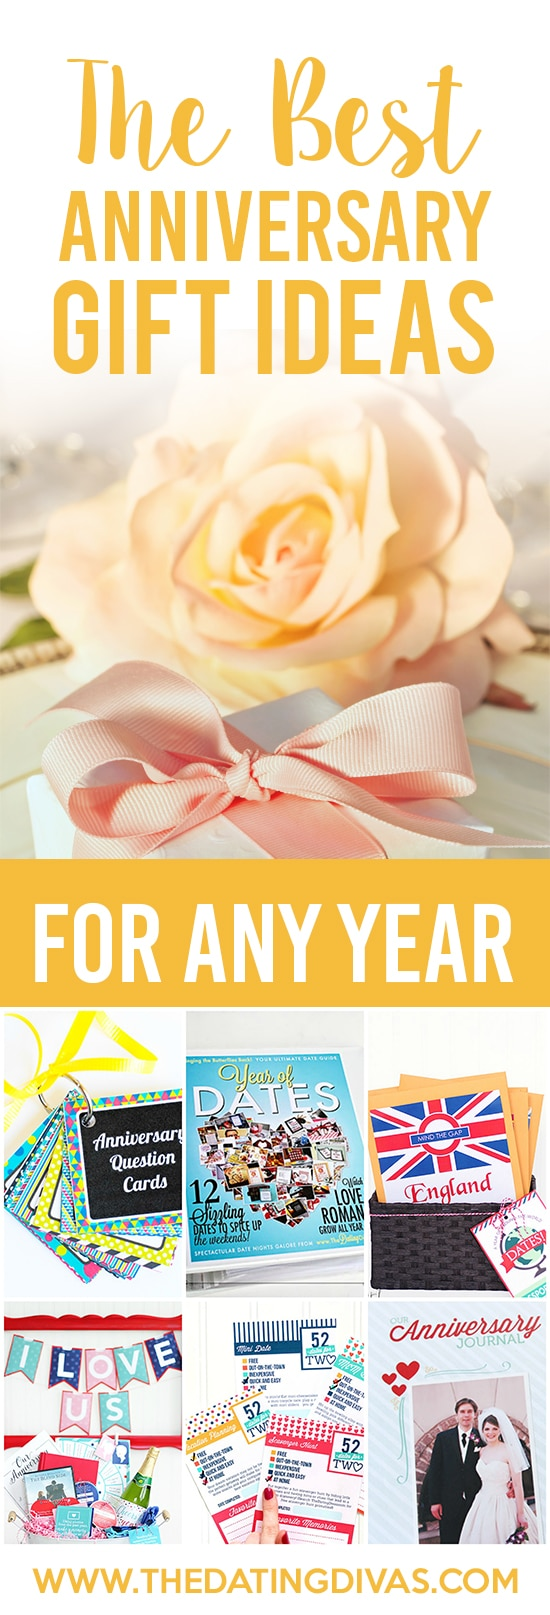 Best Anniversary Gift Ideas for ANY Year